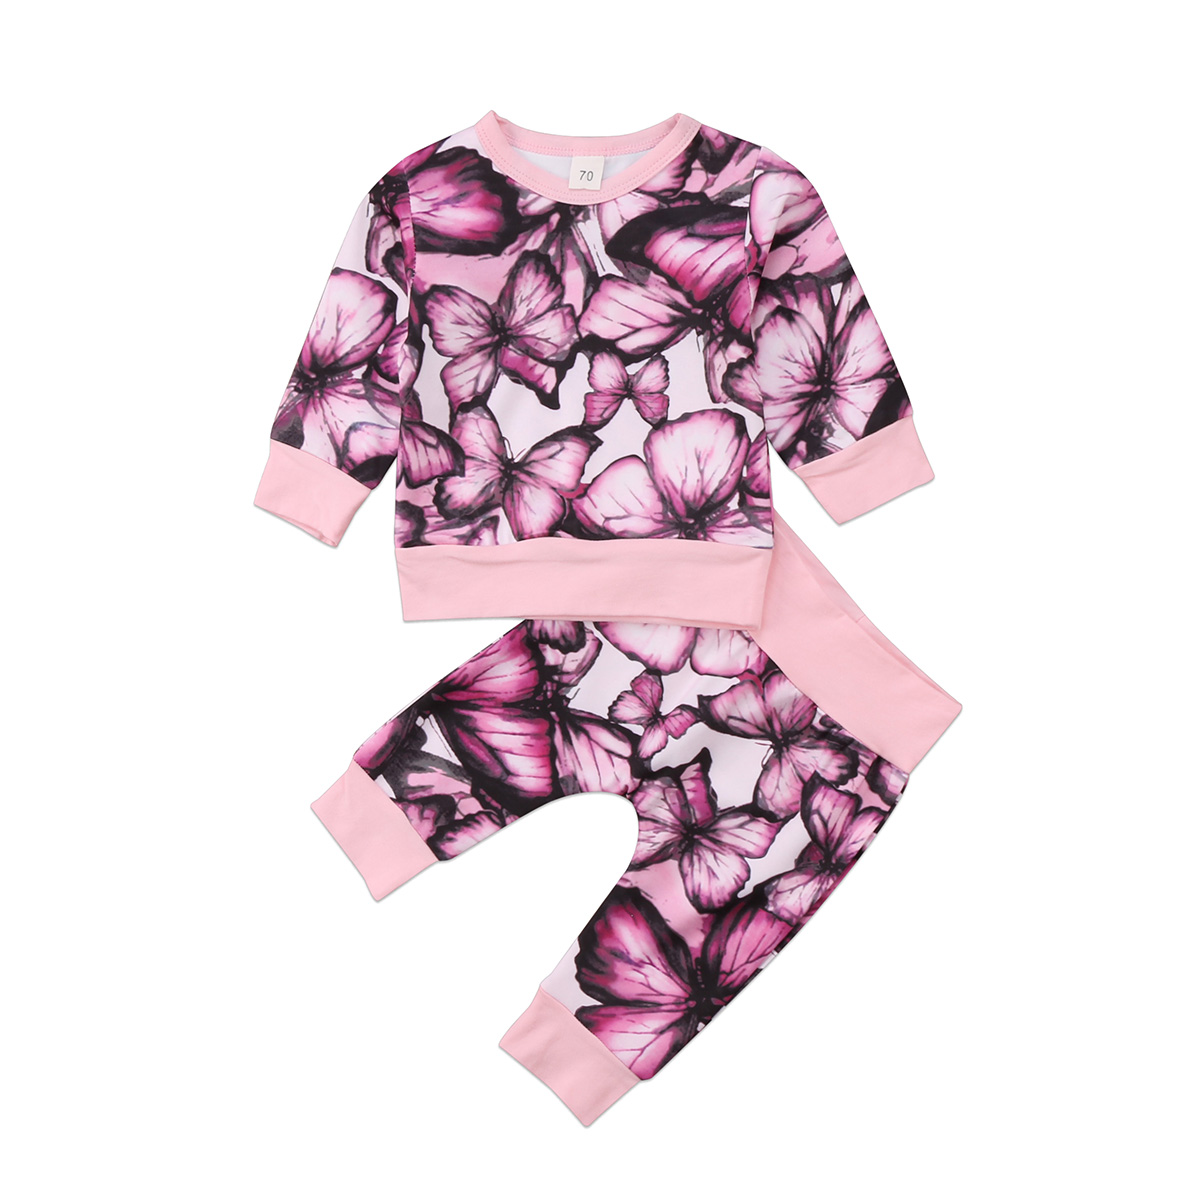 2PCS Pudcoco HOT Sale Newborn Kids Baby Girls Fashion Butterfly Long Sleeve Tops+Pants Clothes Set 0-24M